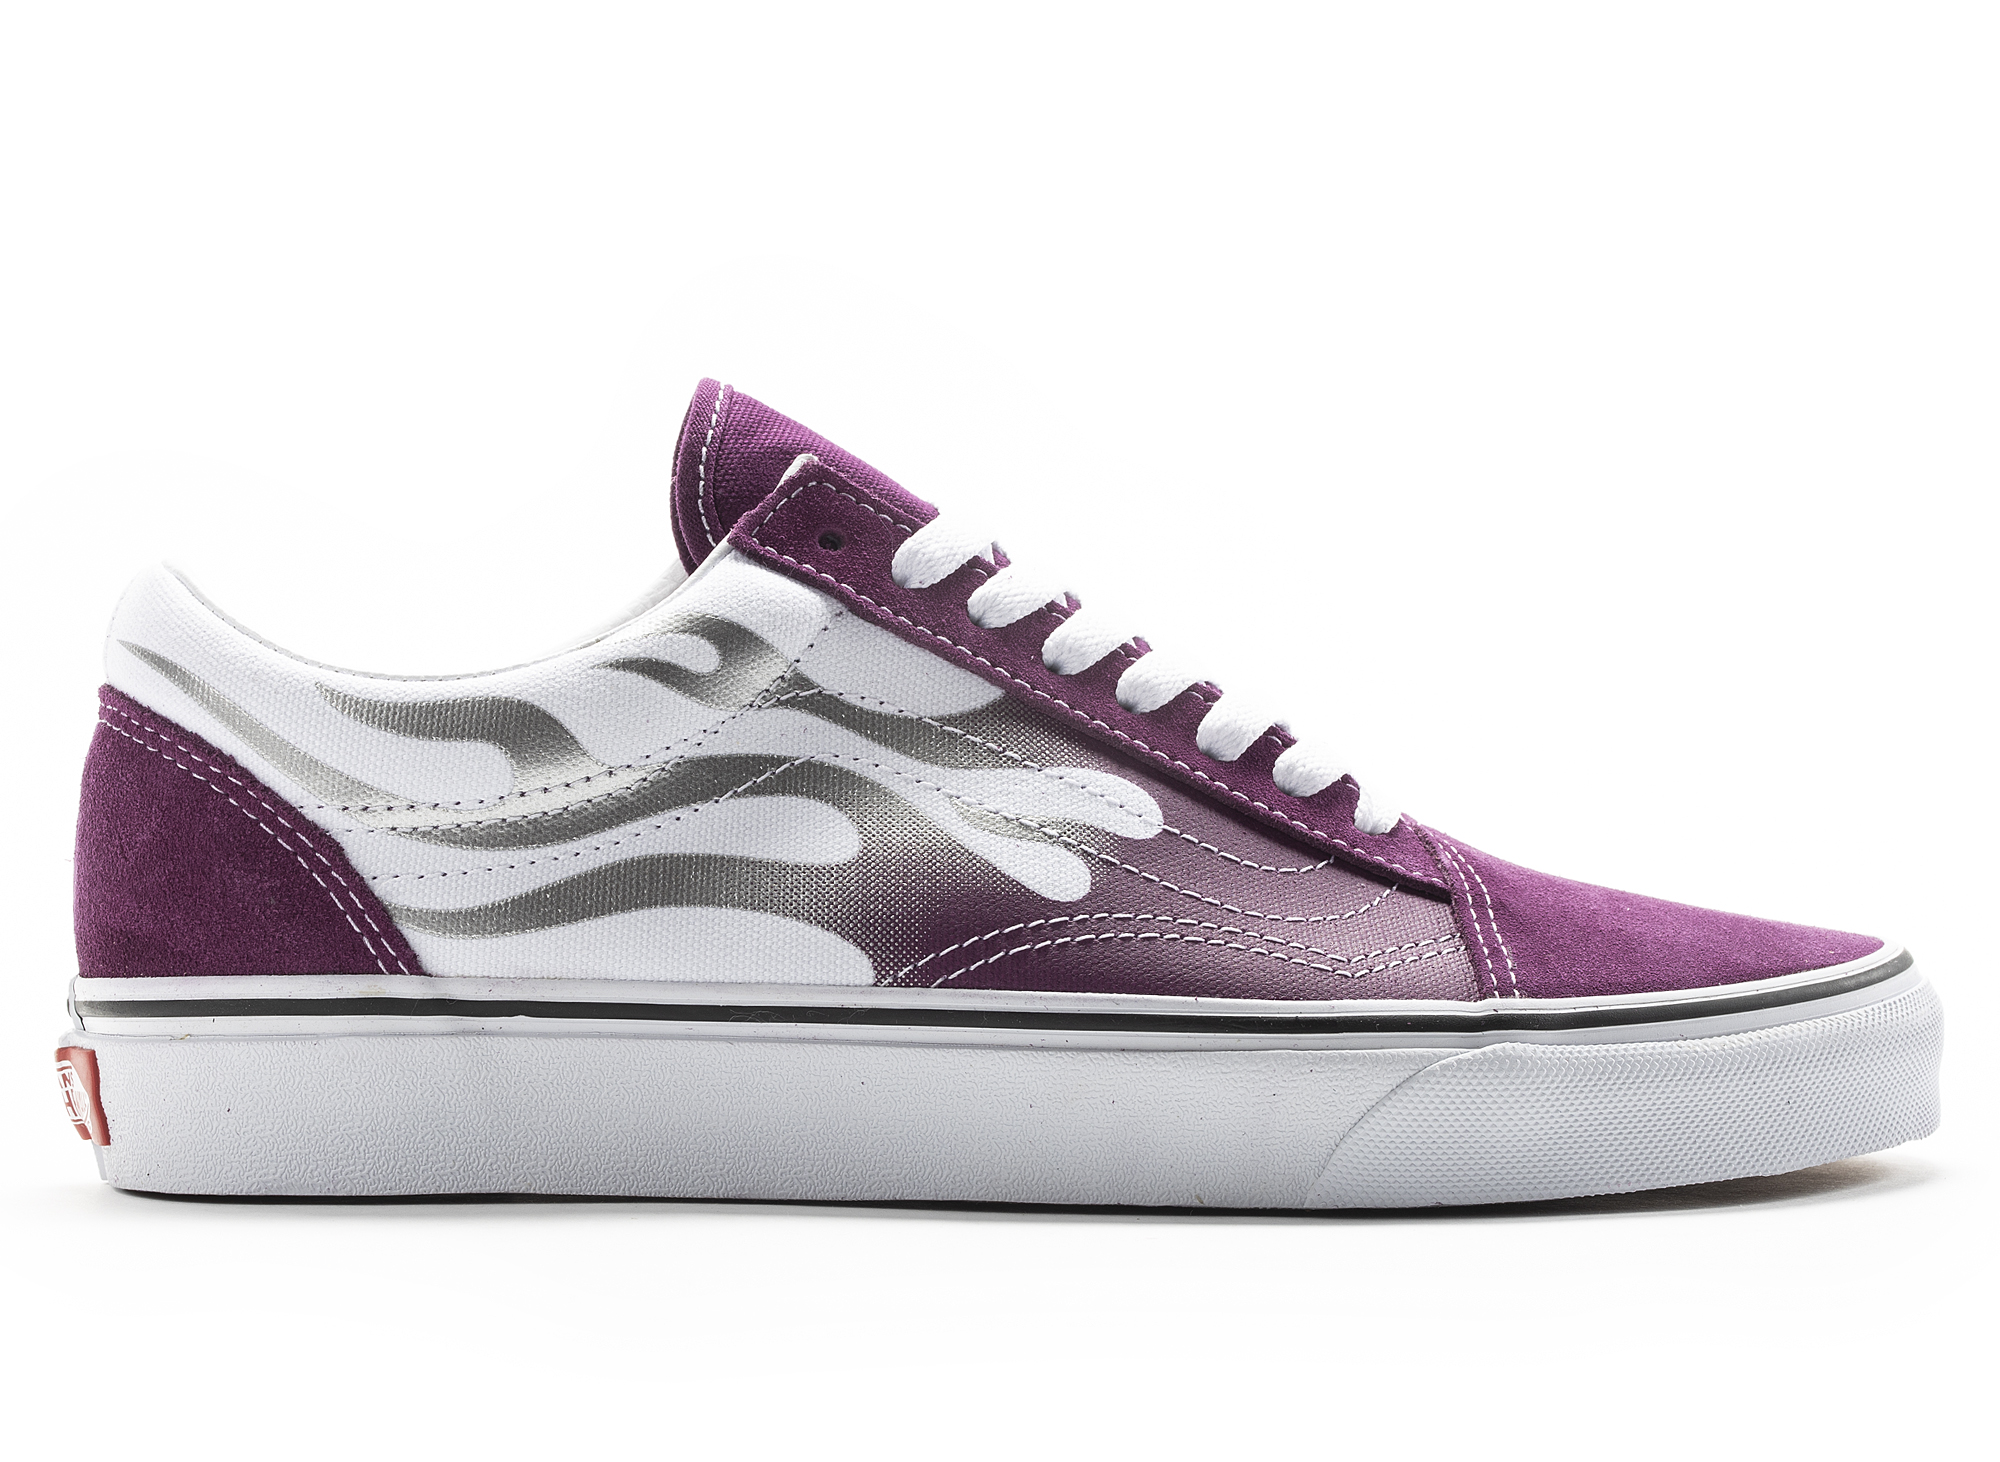 Vans Old Skool 'Purple Flame'